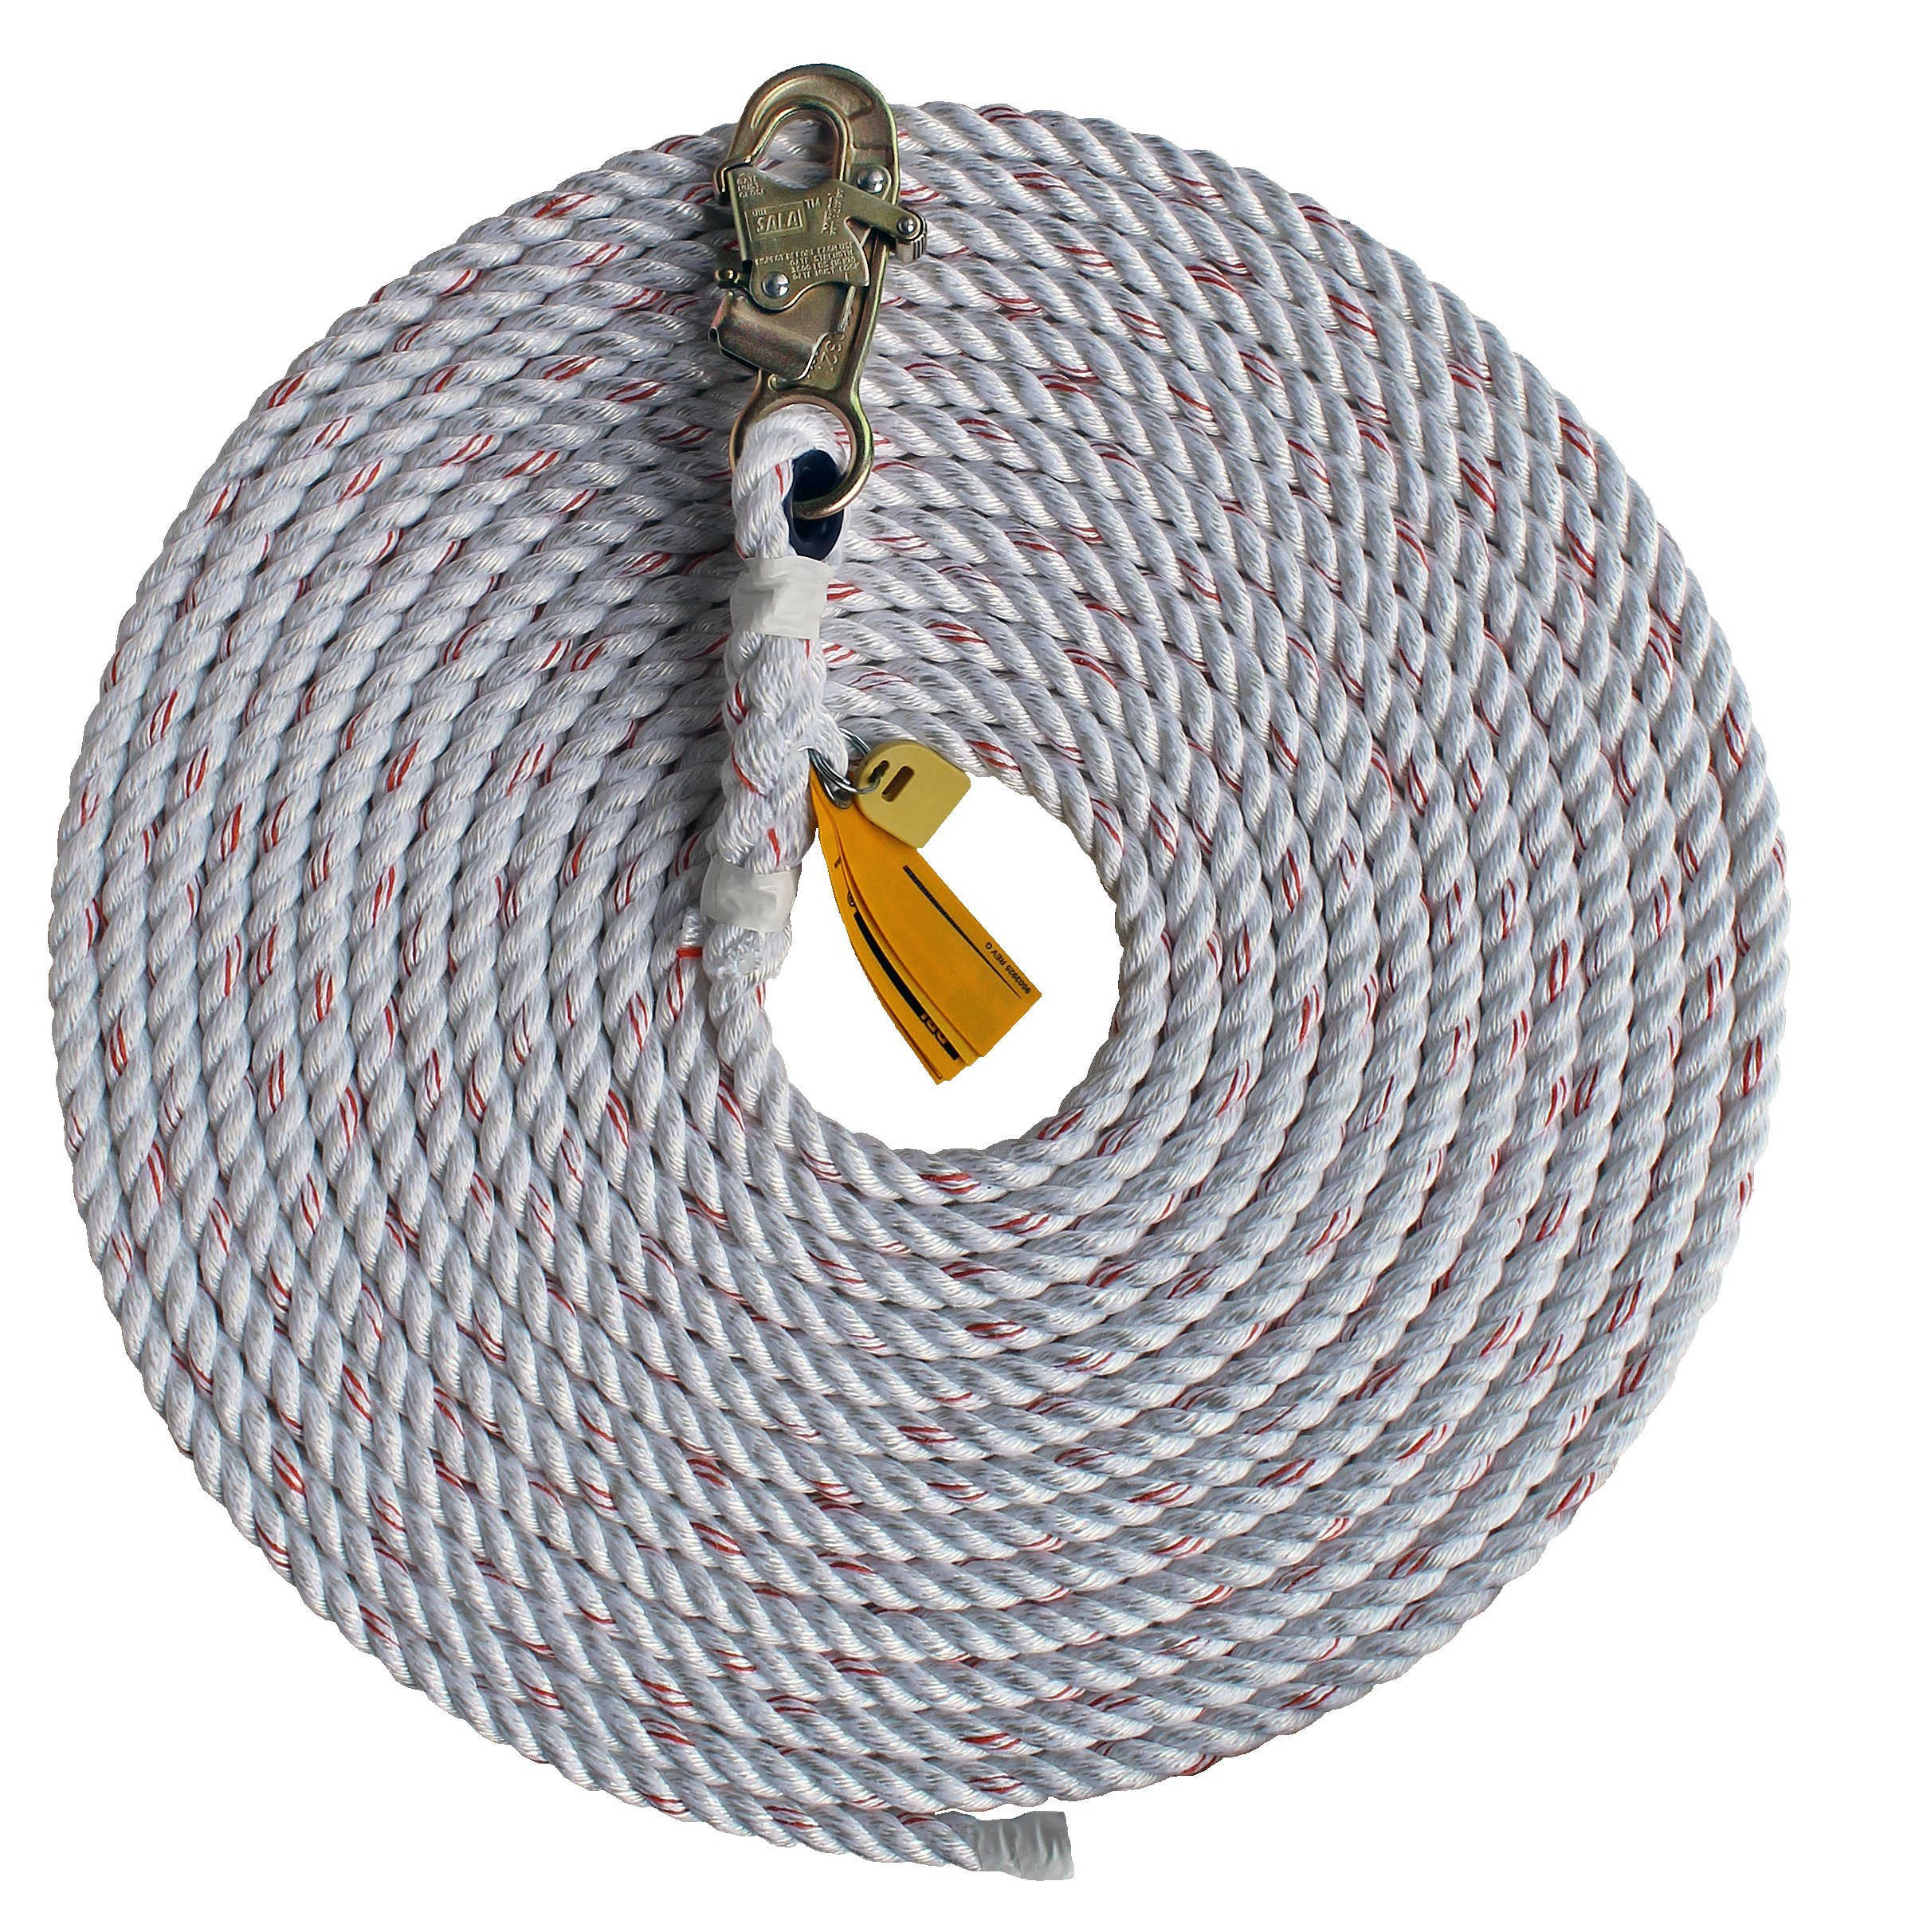 3M DBI-SALA 1202821 Dropline Rope, 75' Polyester/Polypropylene Blend 5/8'' Diameter Rope with Snap Hook At One End, White